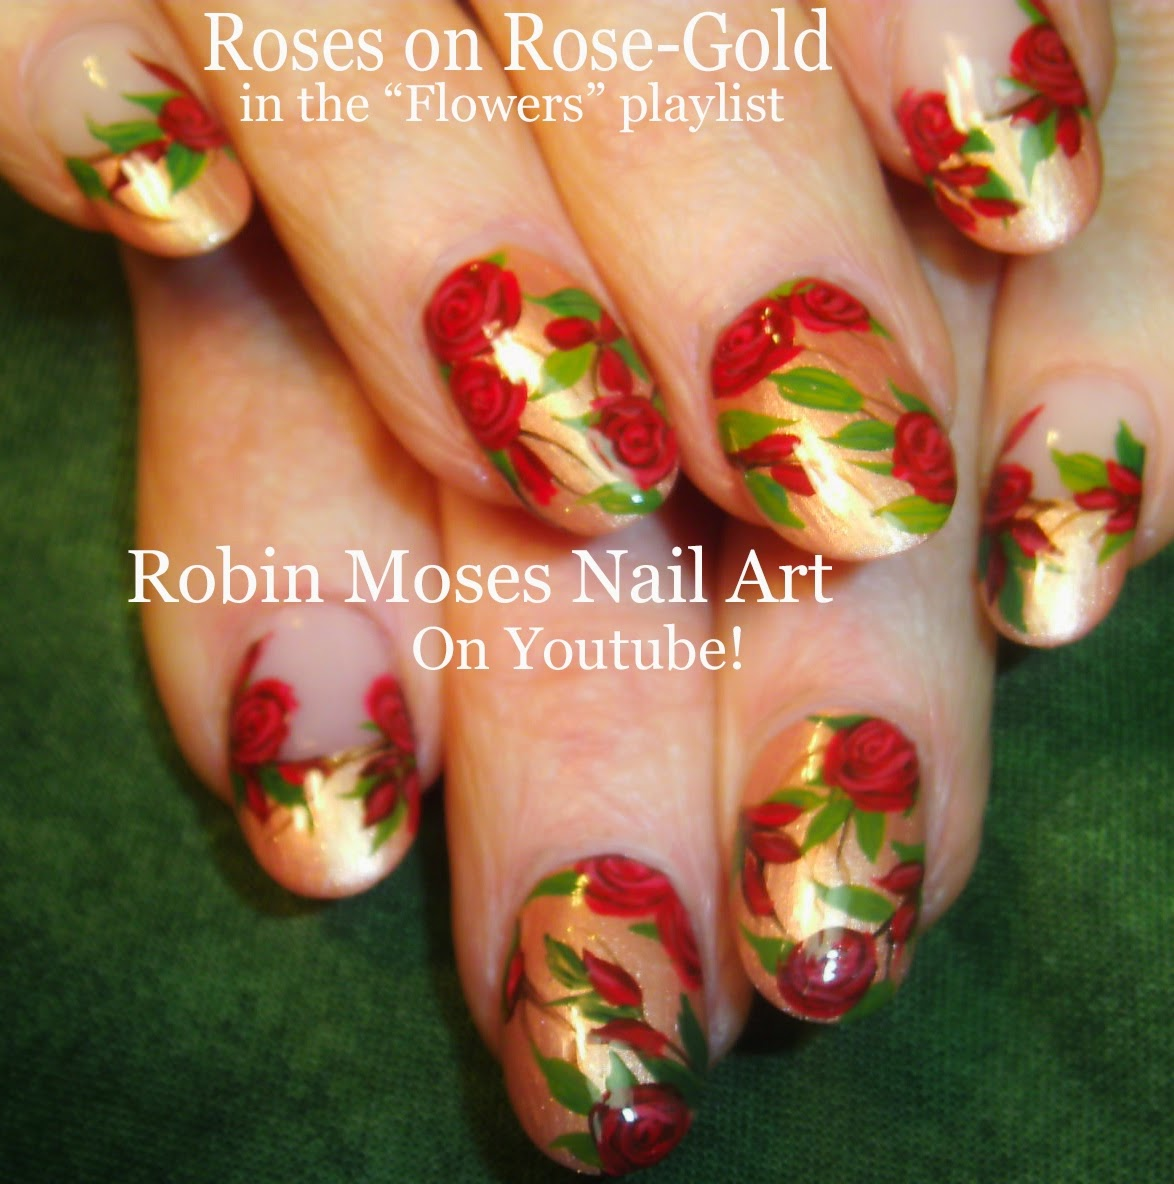 Robin Moses Nail Art Designs: DIY Nail Tutorial On Rose Gold